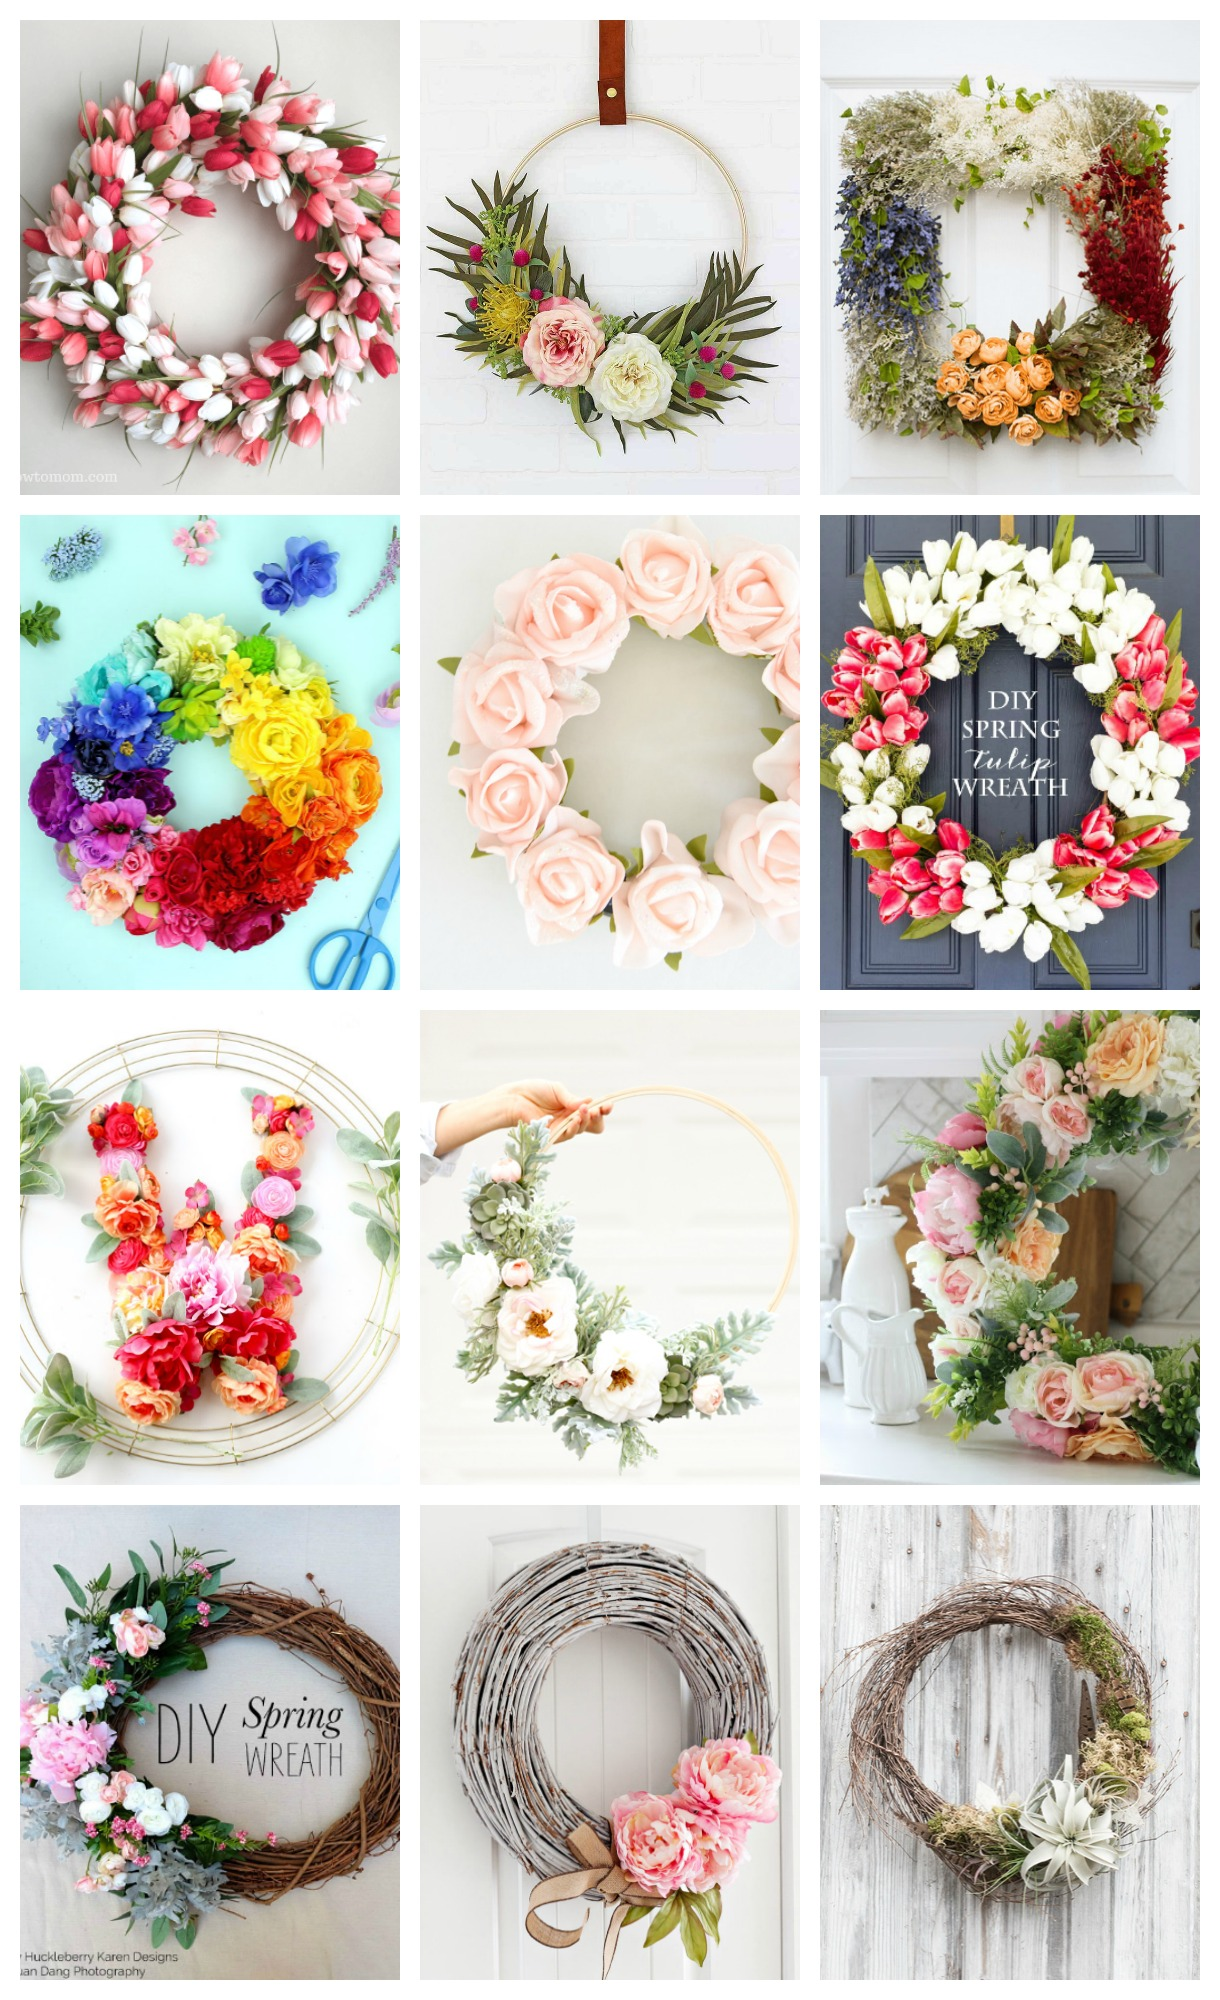 20 beautiful spring wreath ideas